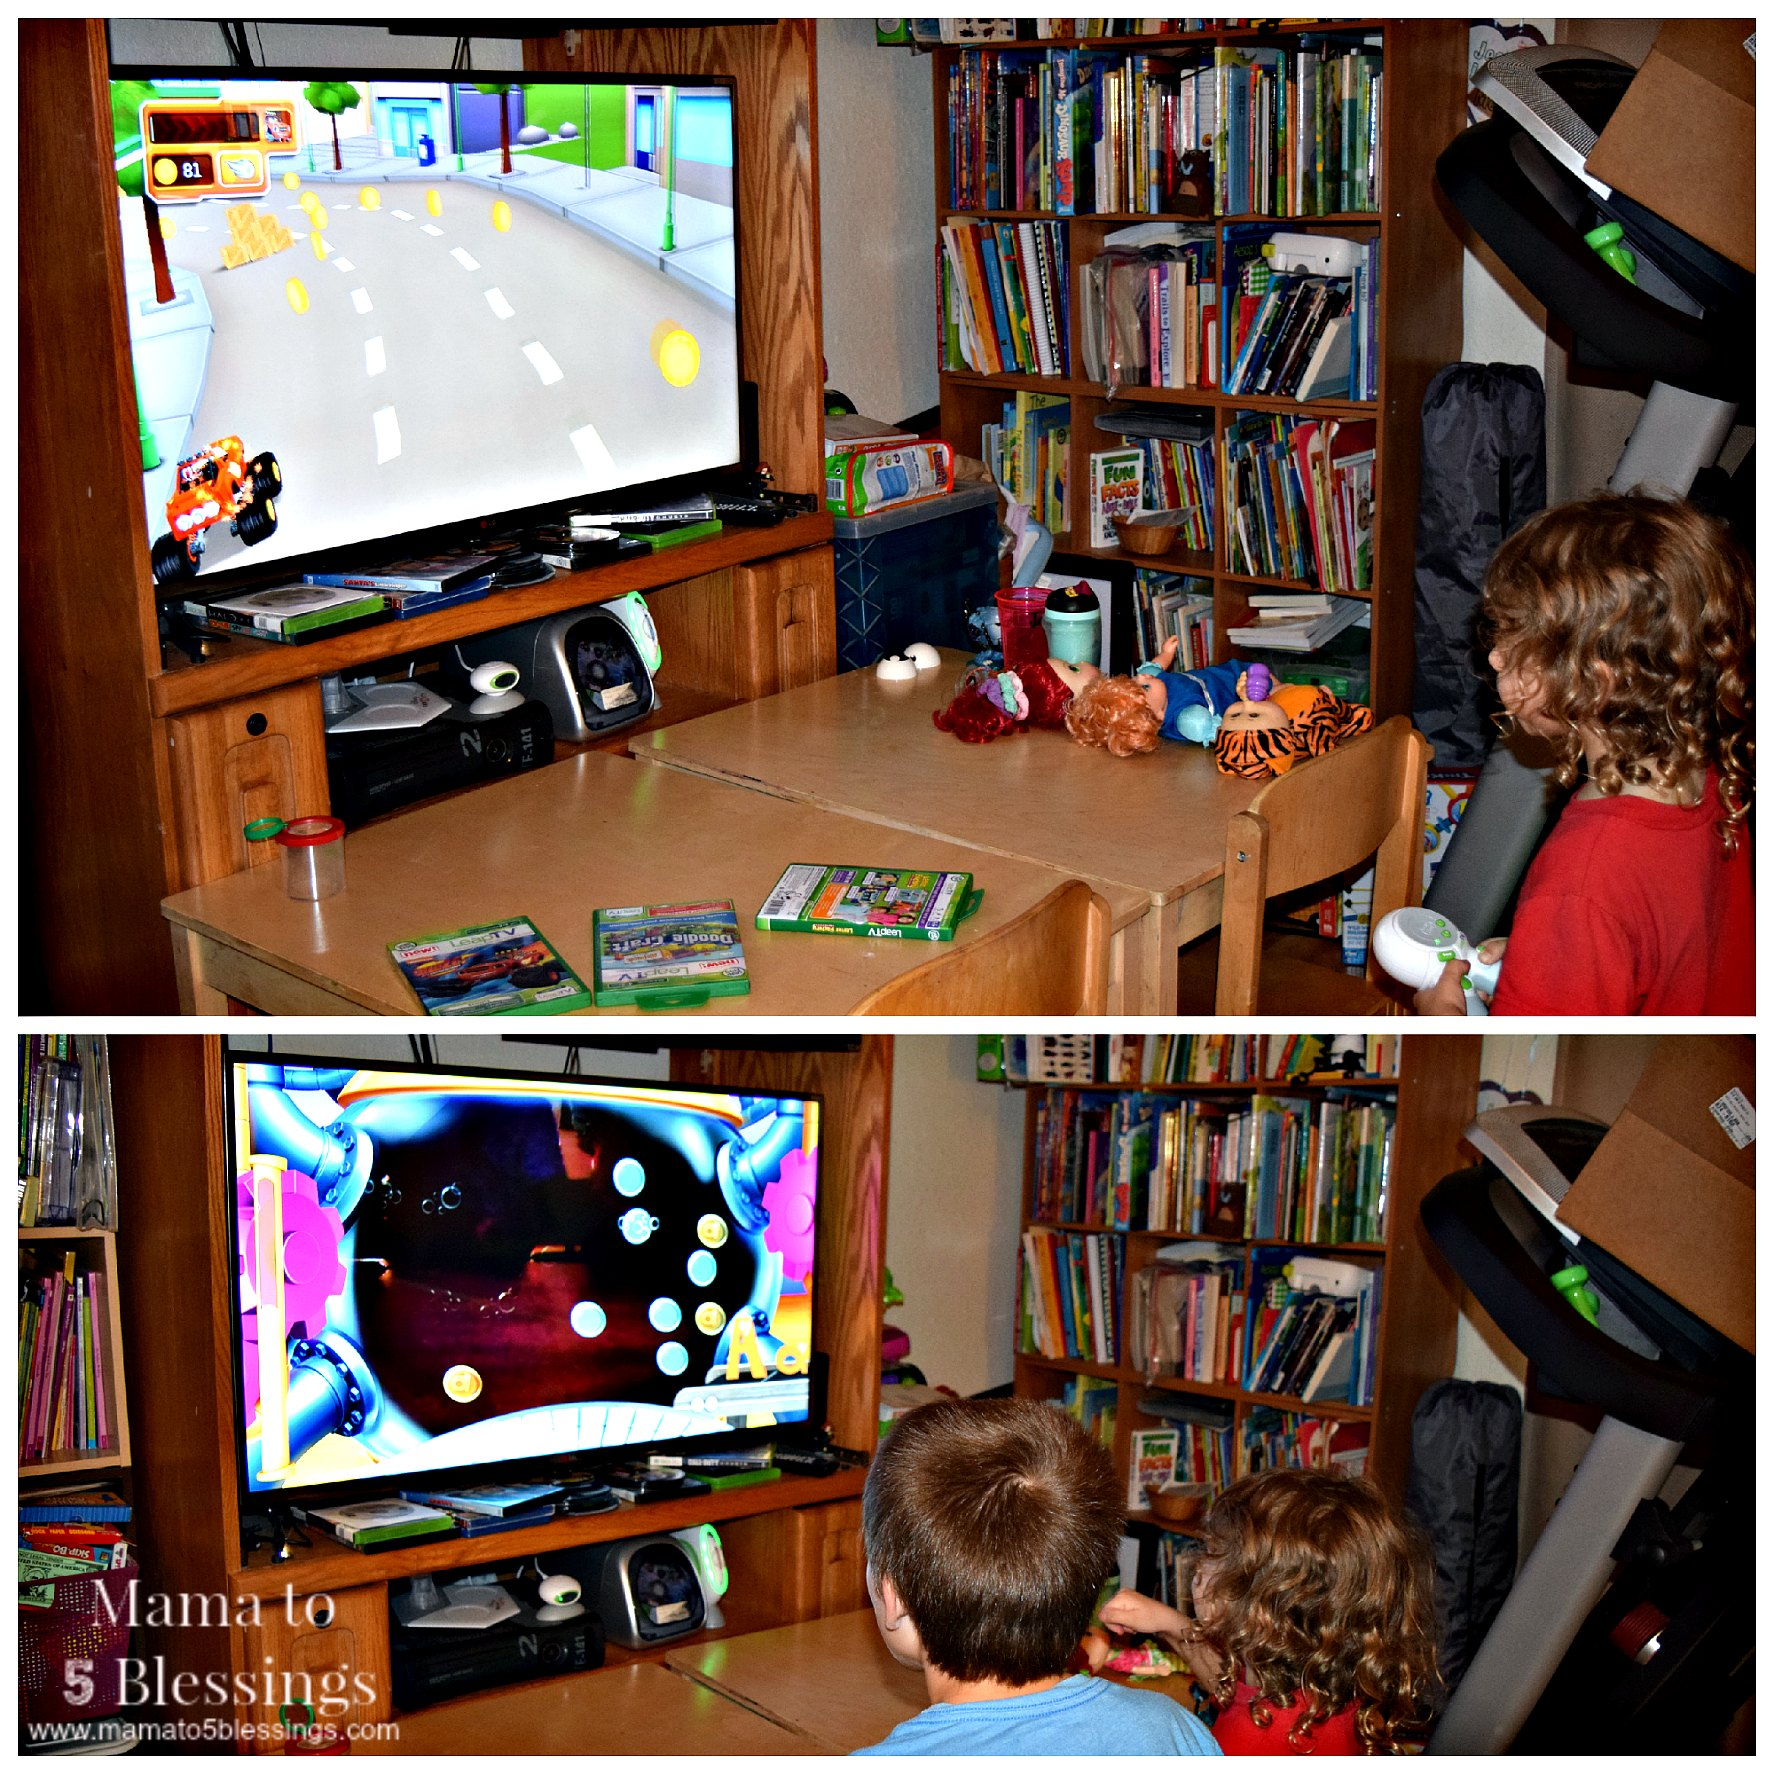 leaptv play collage